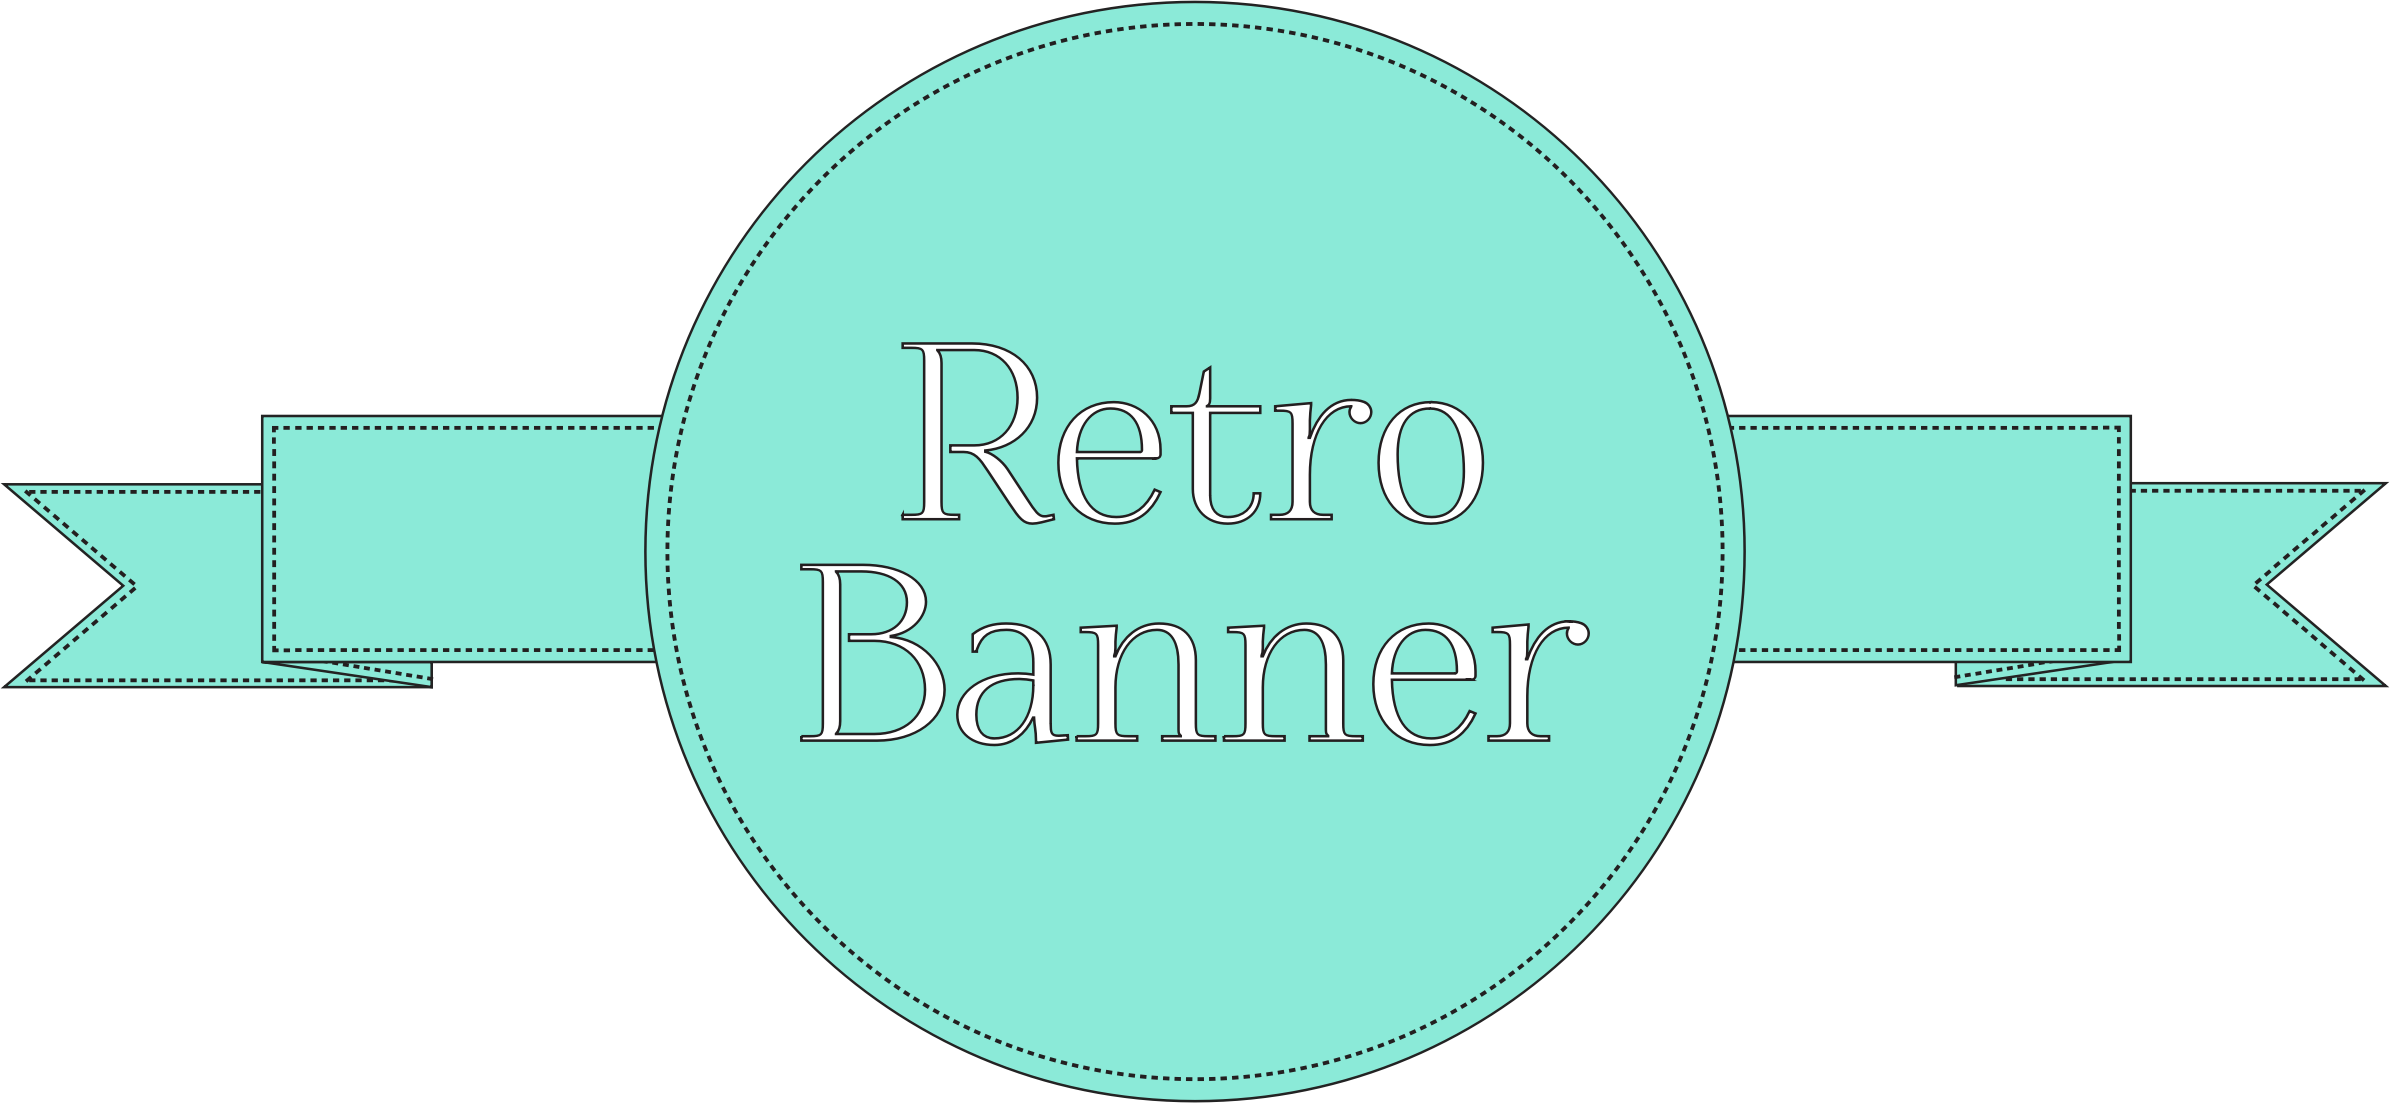 Retro banner png. Reupload icons free and